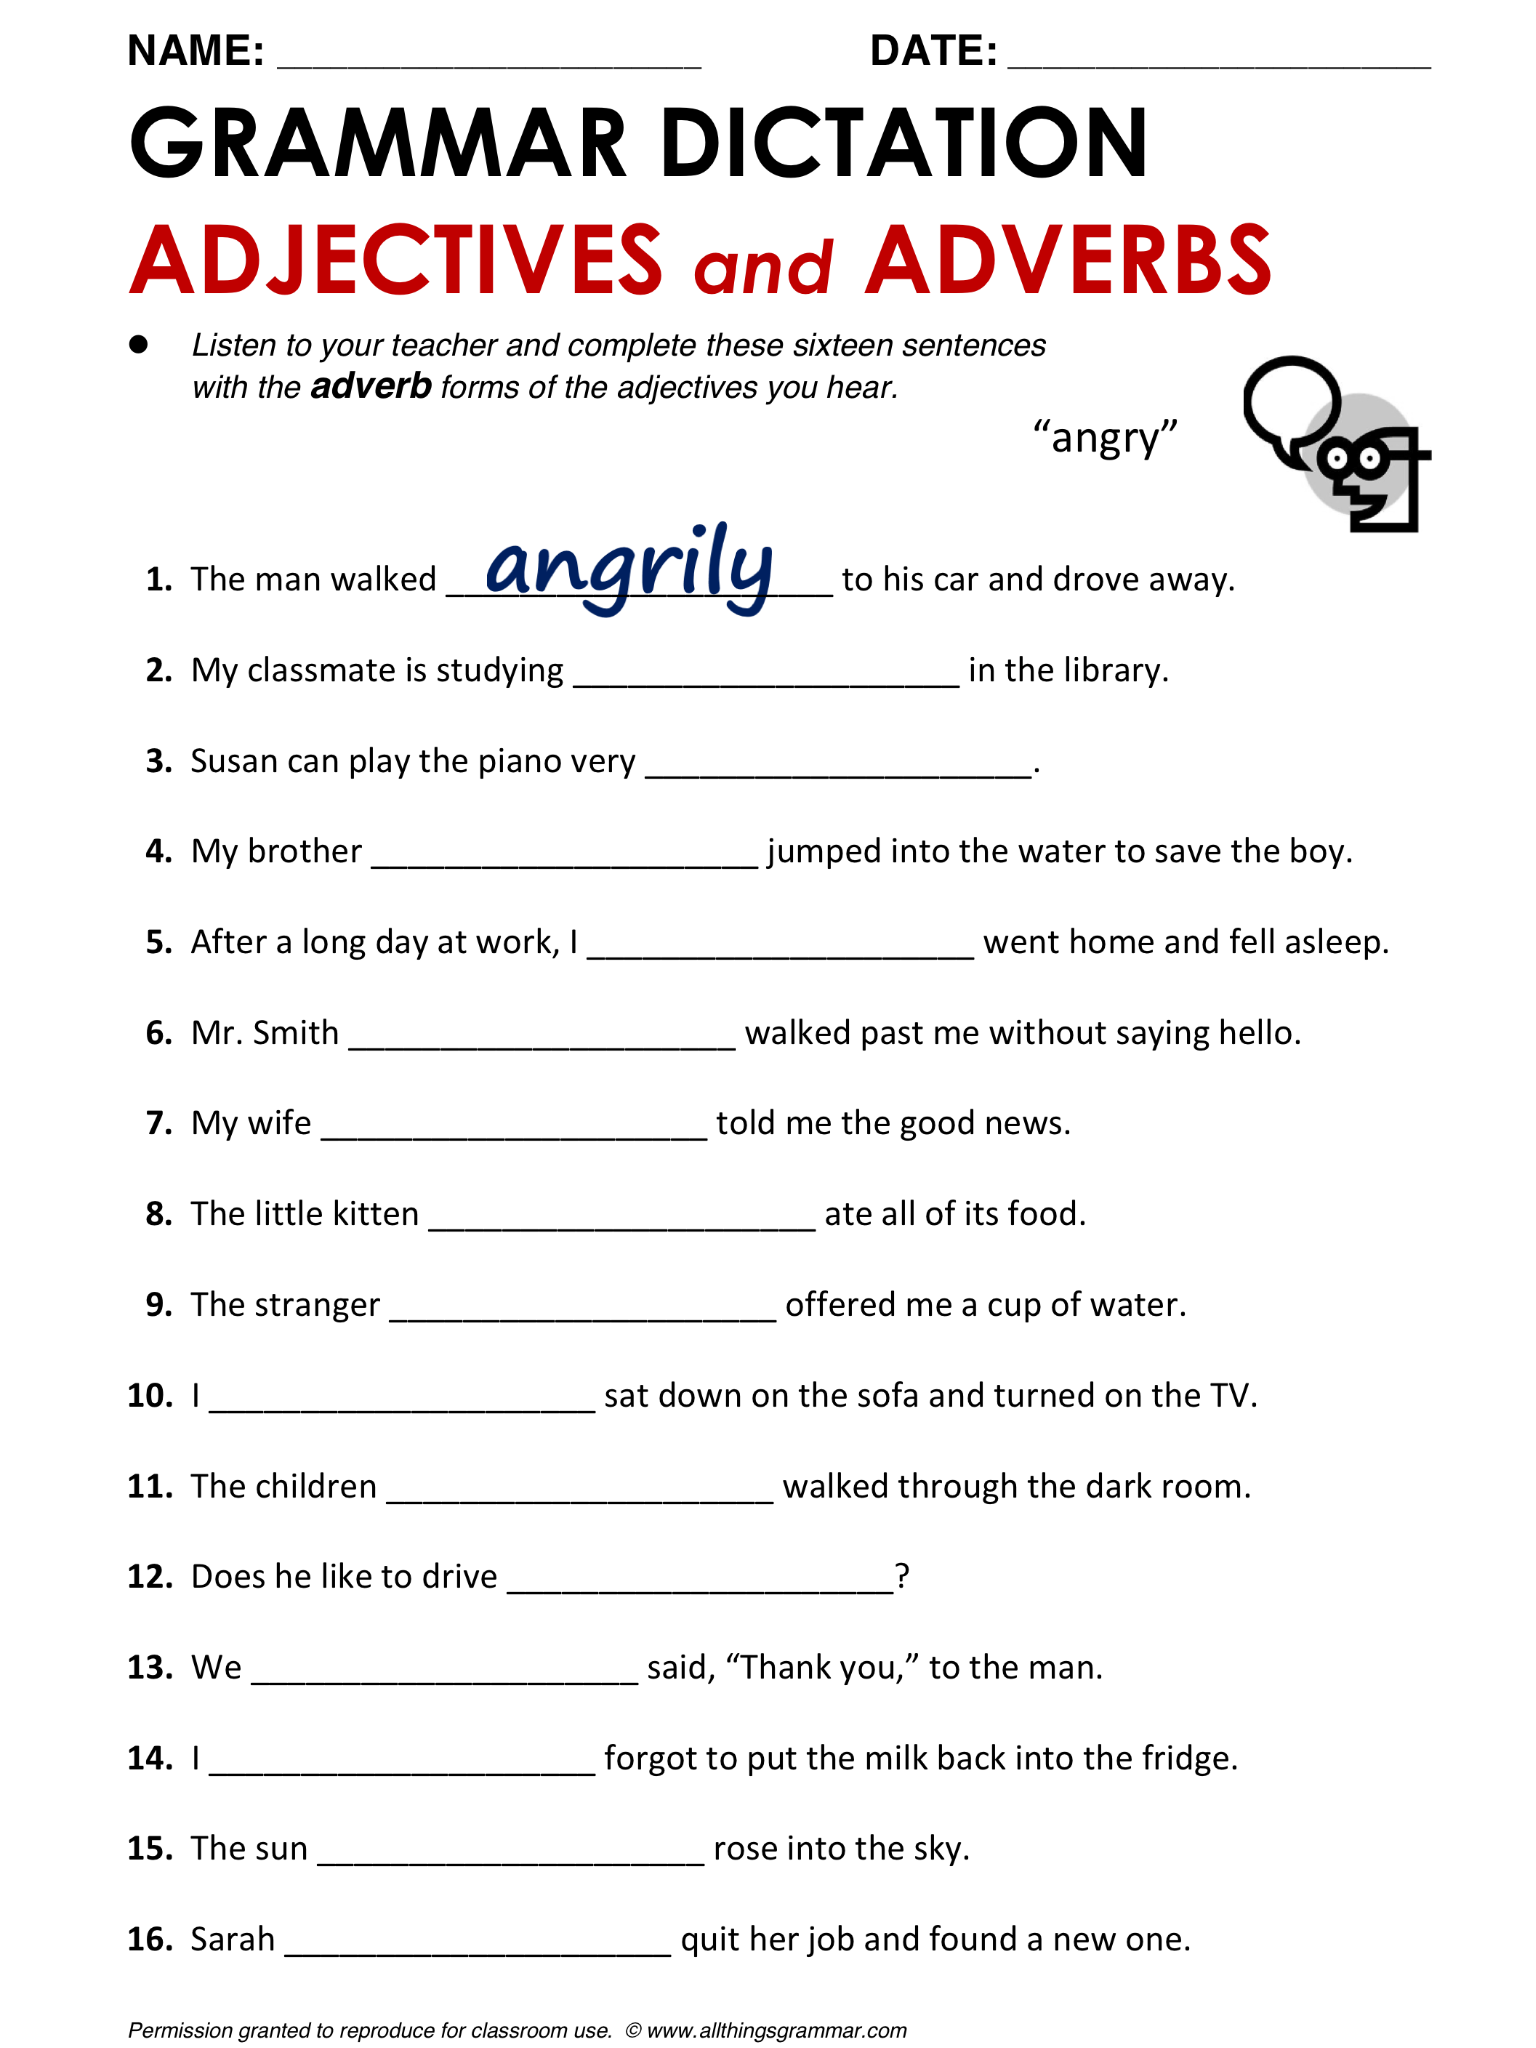 English Grammar Adjectives and Adverbs http://www.allthingsgrammar ...